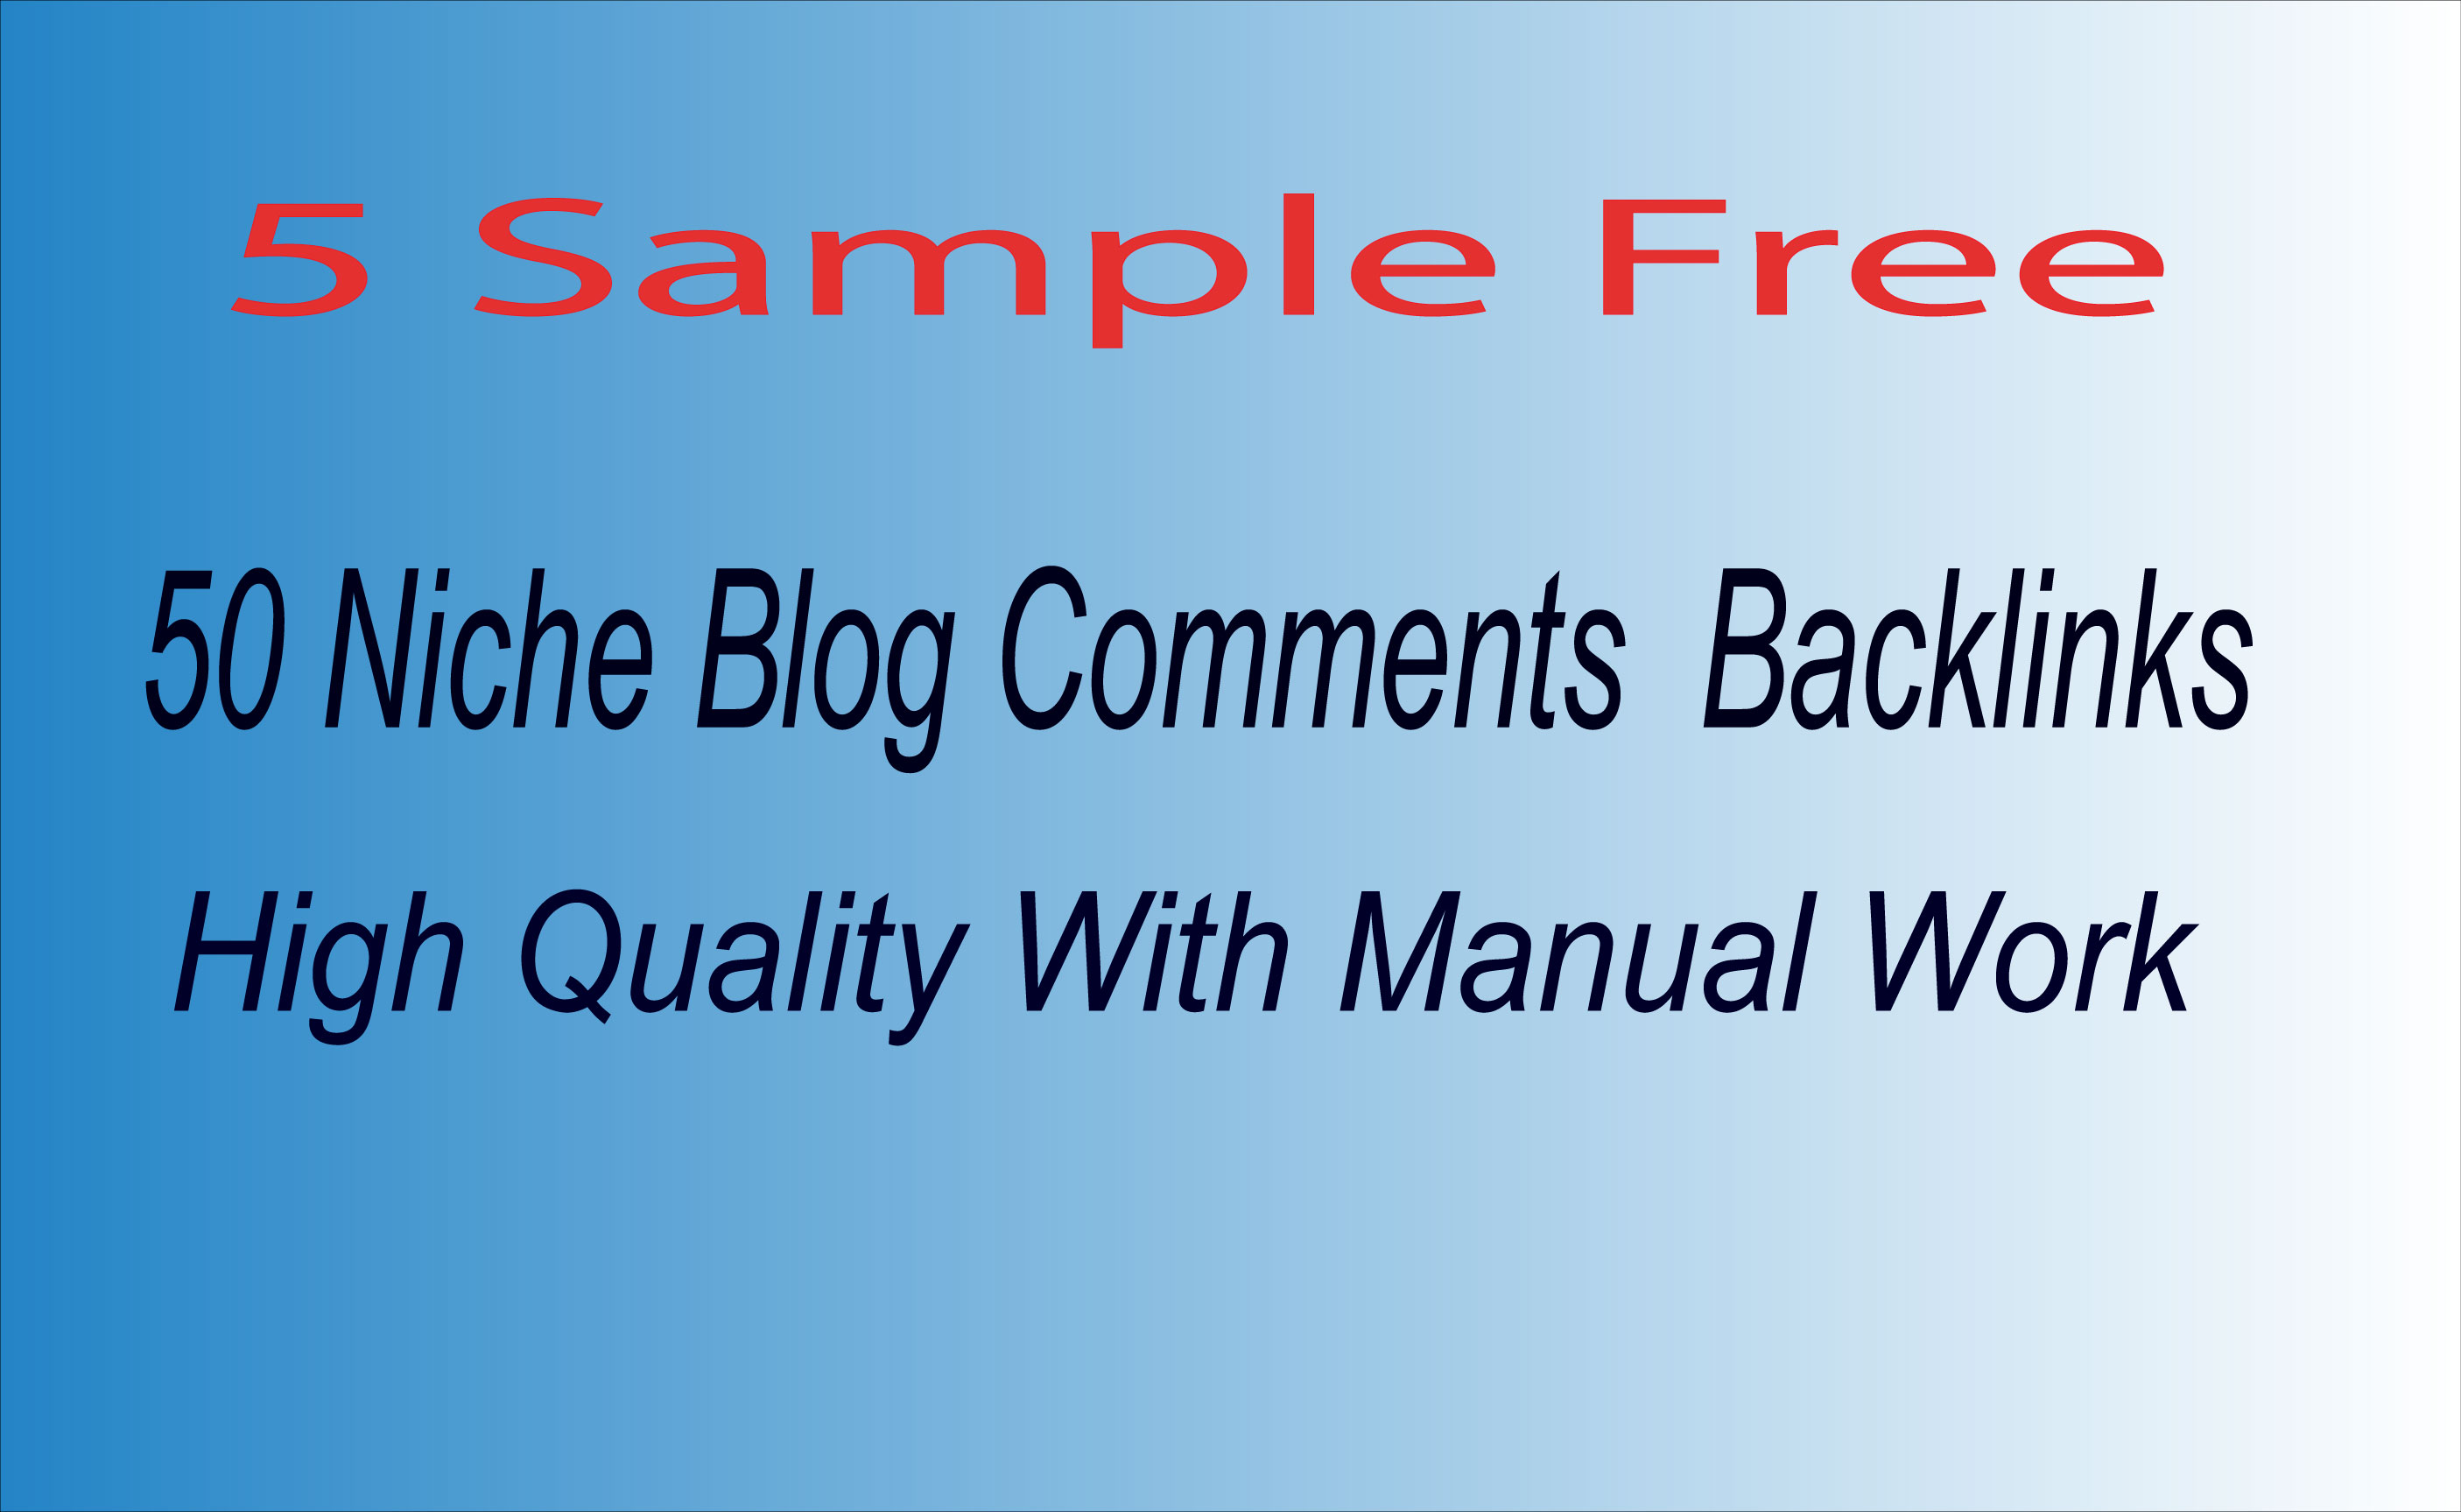 Take 5 free Niche Blog Comments then order 50 Niche Blog Comments